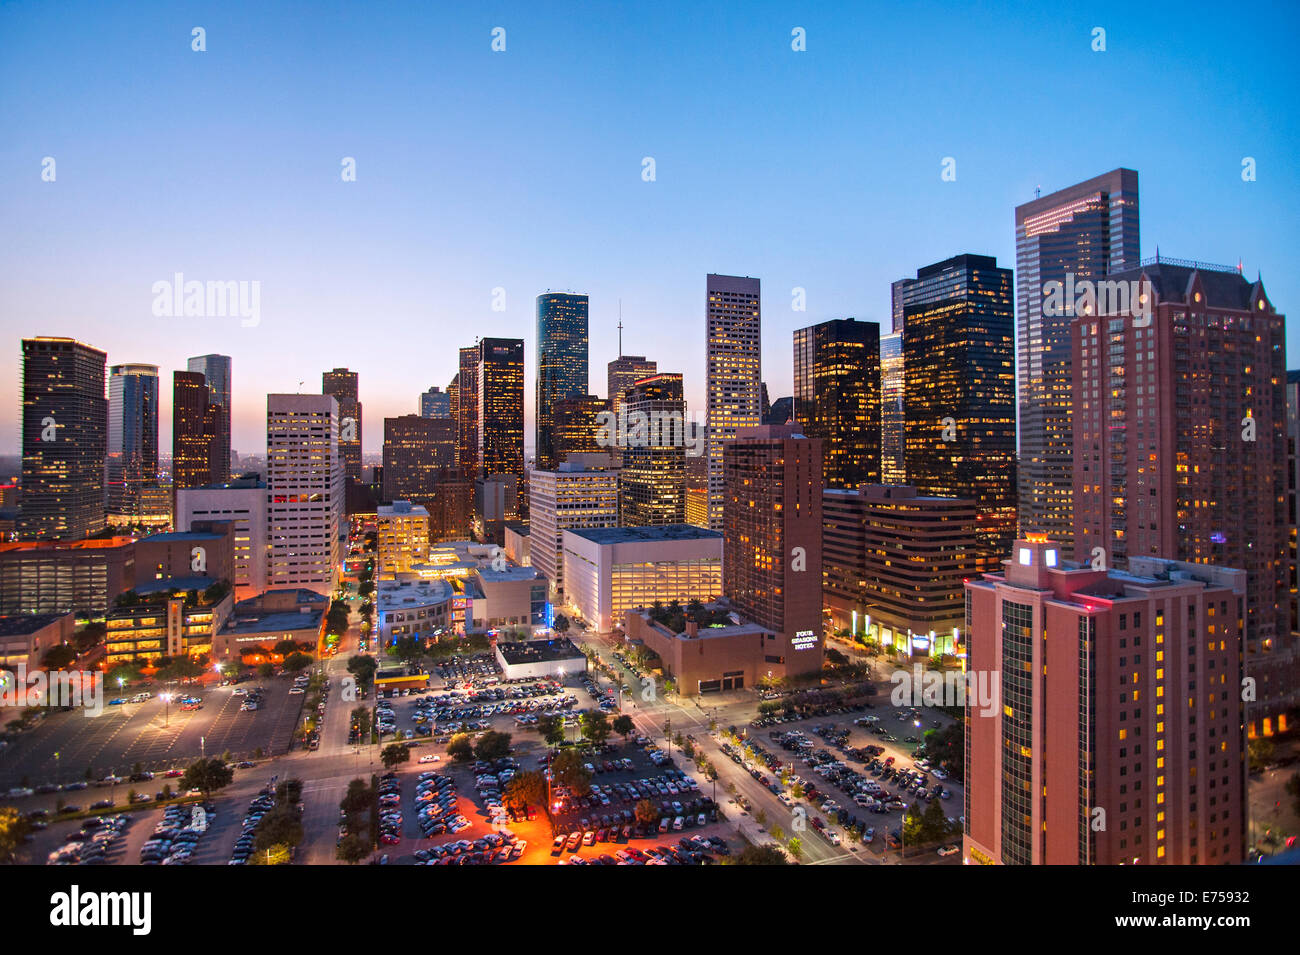 Skyline of Houston, Texas - Stock Image